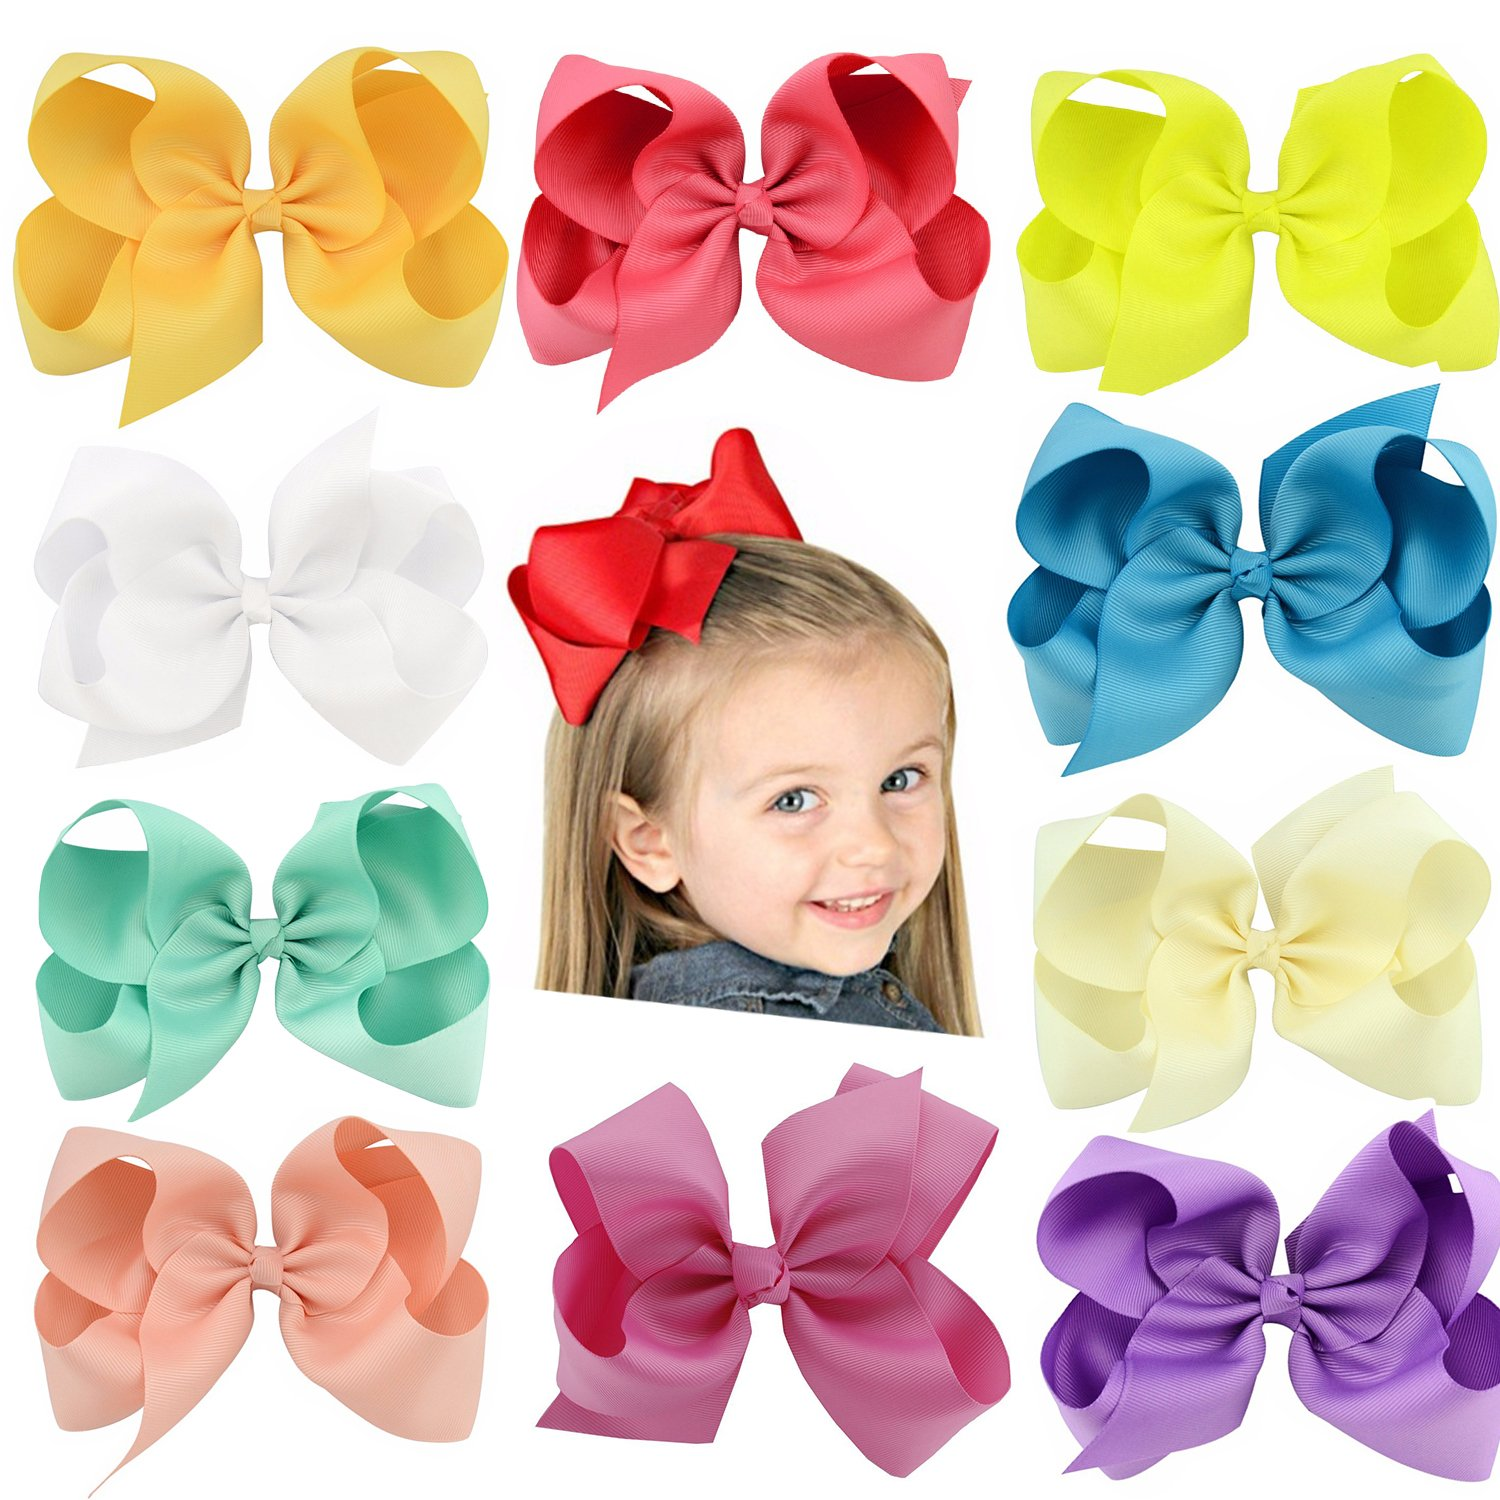 22 PCS Hair Bows Clips,SS SHOVAN Bows for Girls Boutique Grosgrain Ribbon Multi-colored Hand-made for Baby Littele Girl Teen Toddler Kid